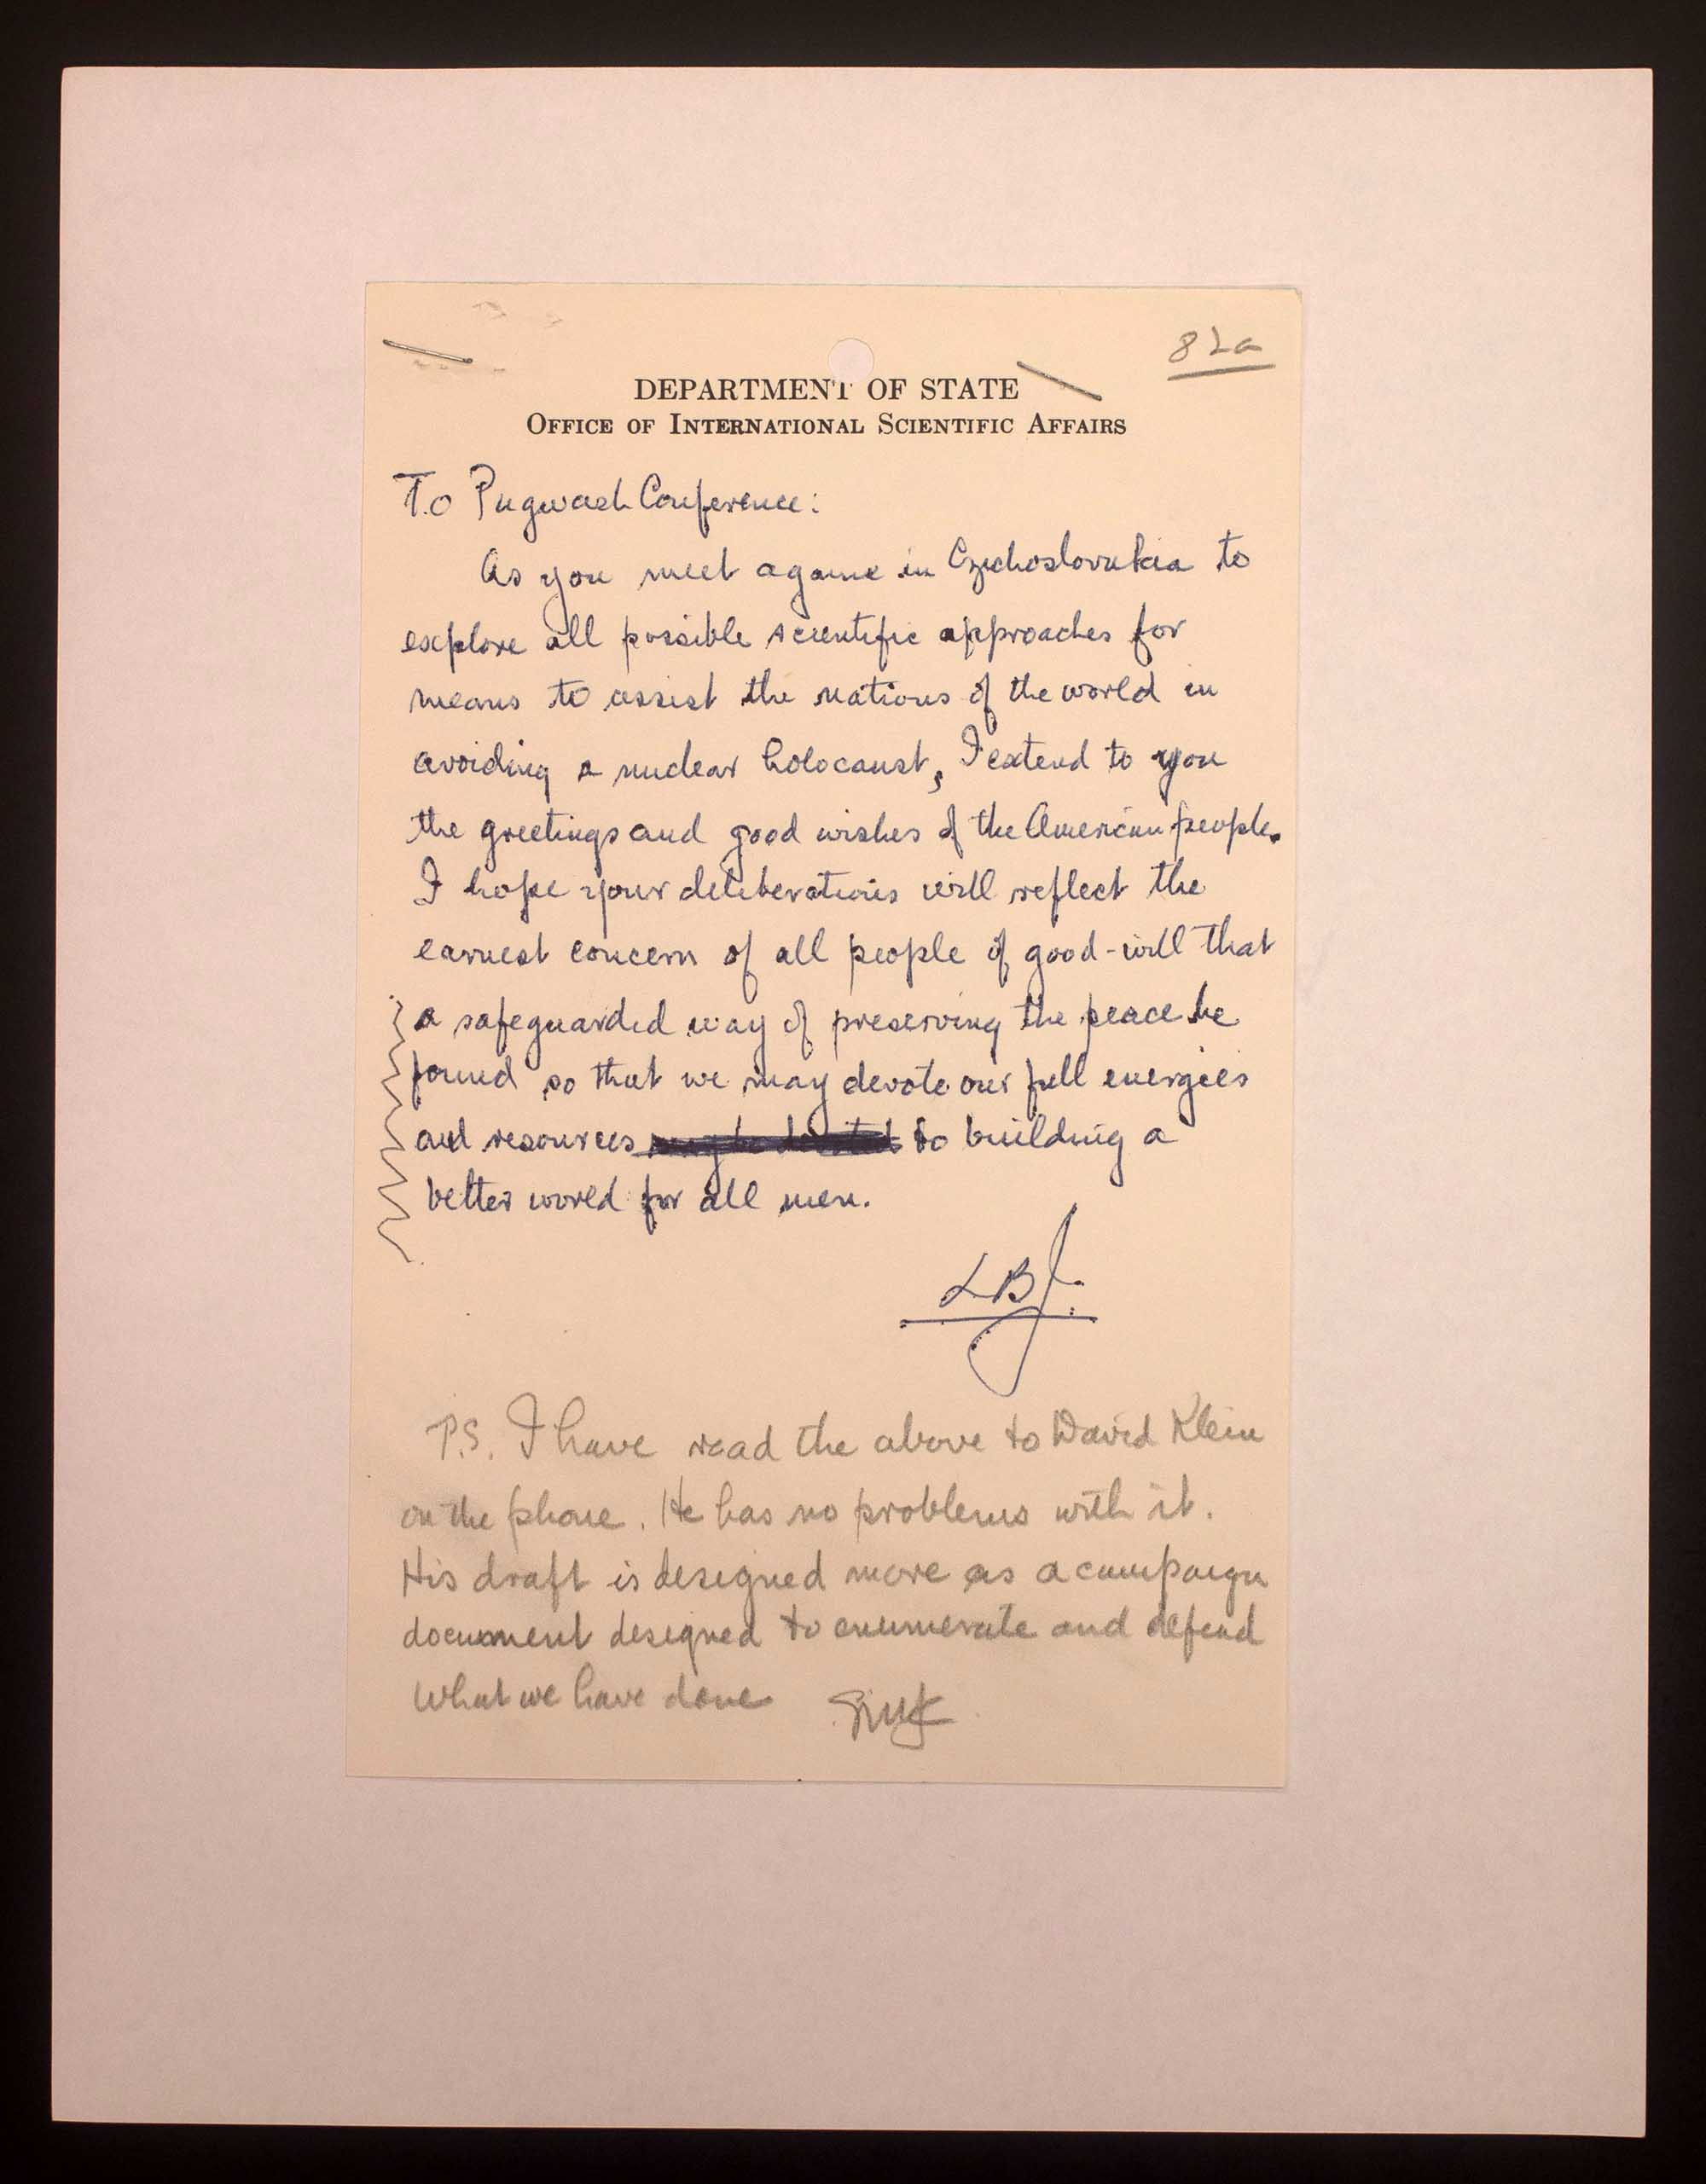 Handwritten note from President Johnson to the Pugwash Conference regarding the avoidance of nuclear war.